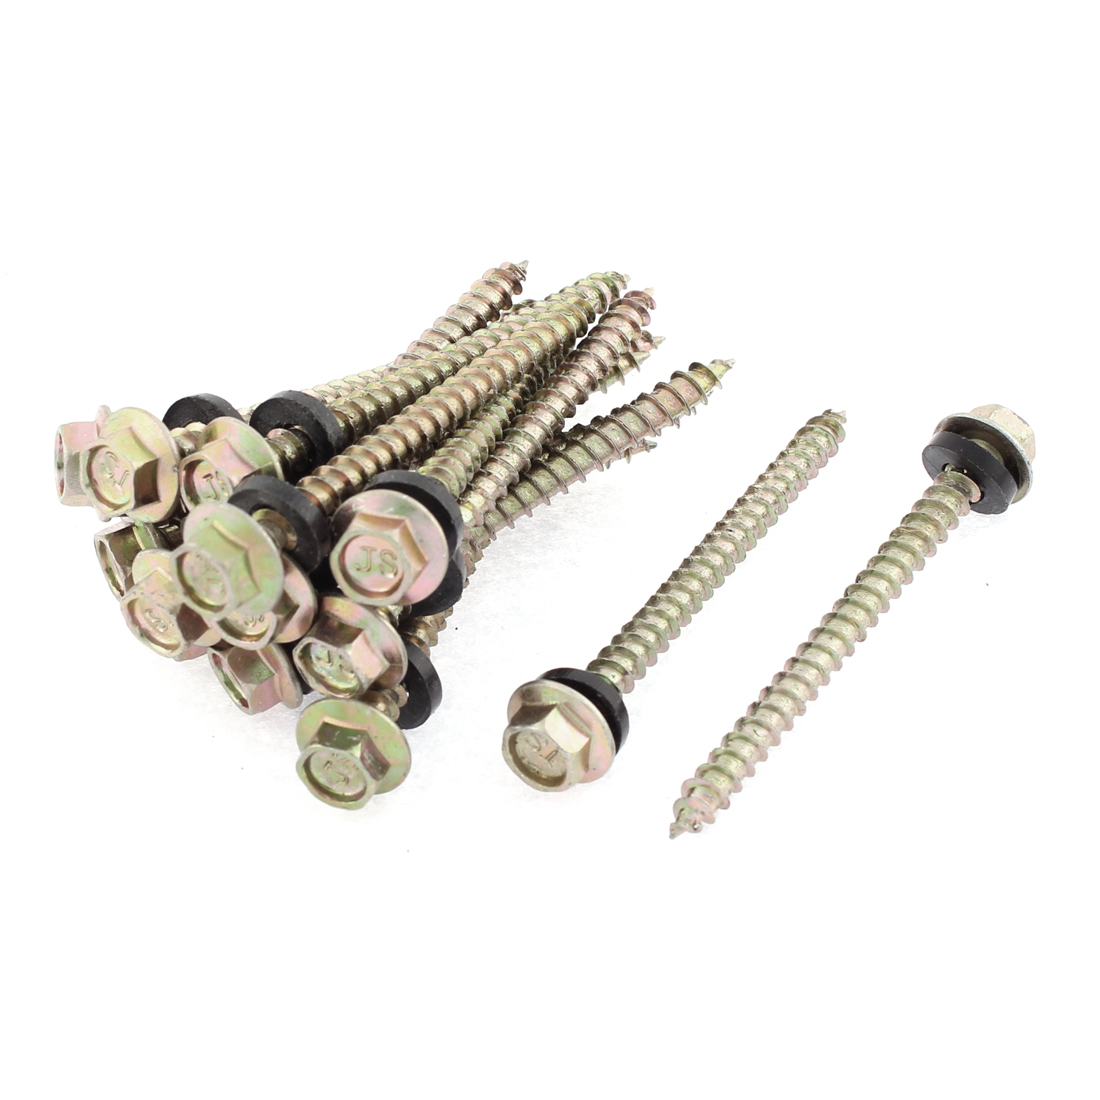 15 Pcs M5 x 60mm Male Thread 65mm Length Hex Washer Head Self Tapping Drilling Screw Fastener